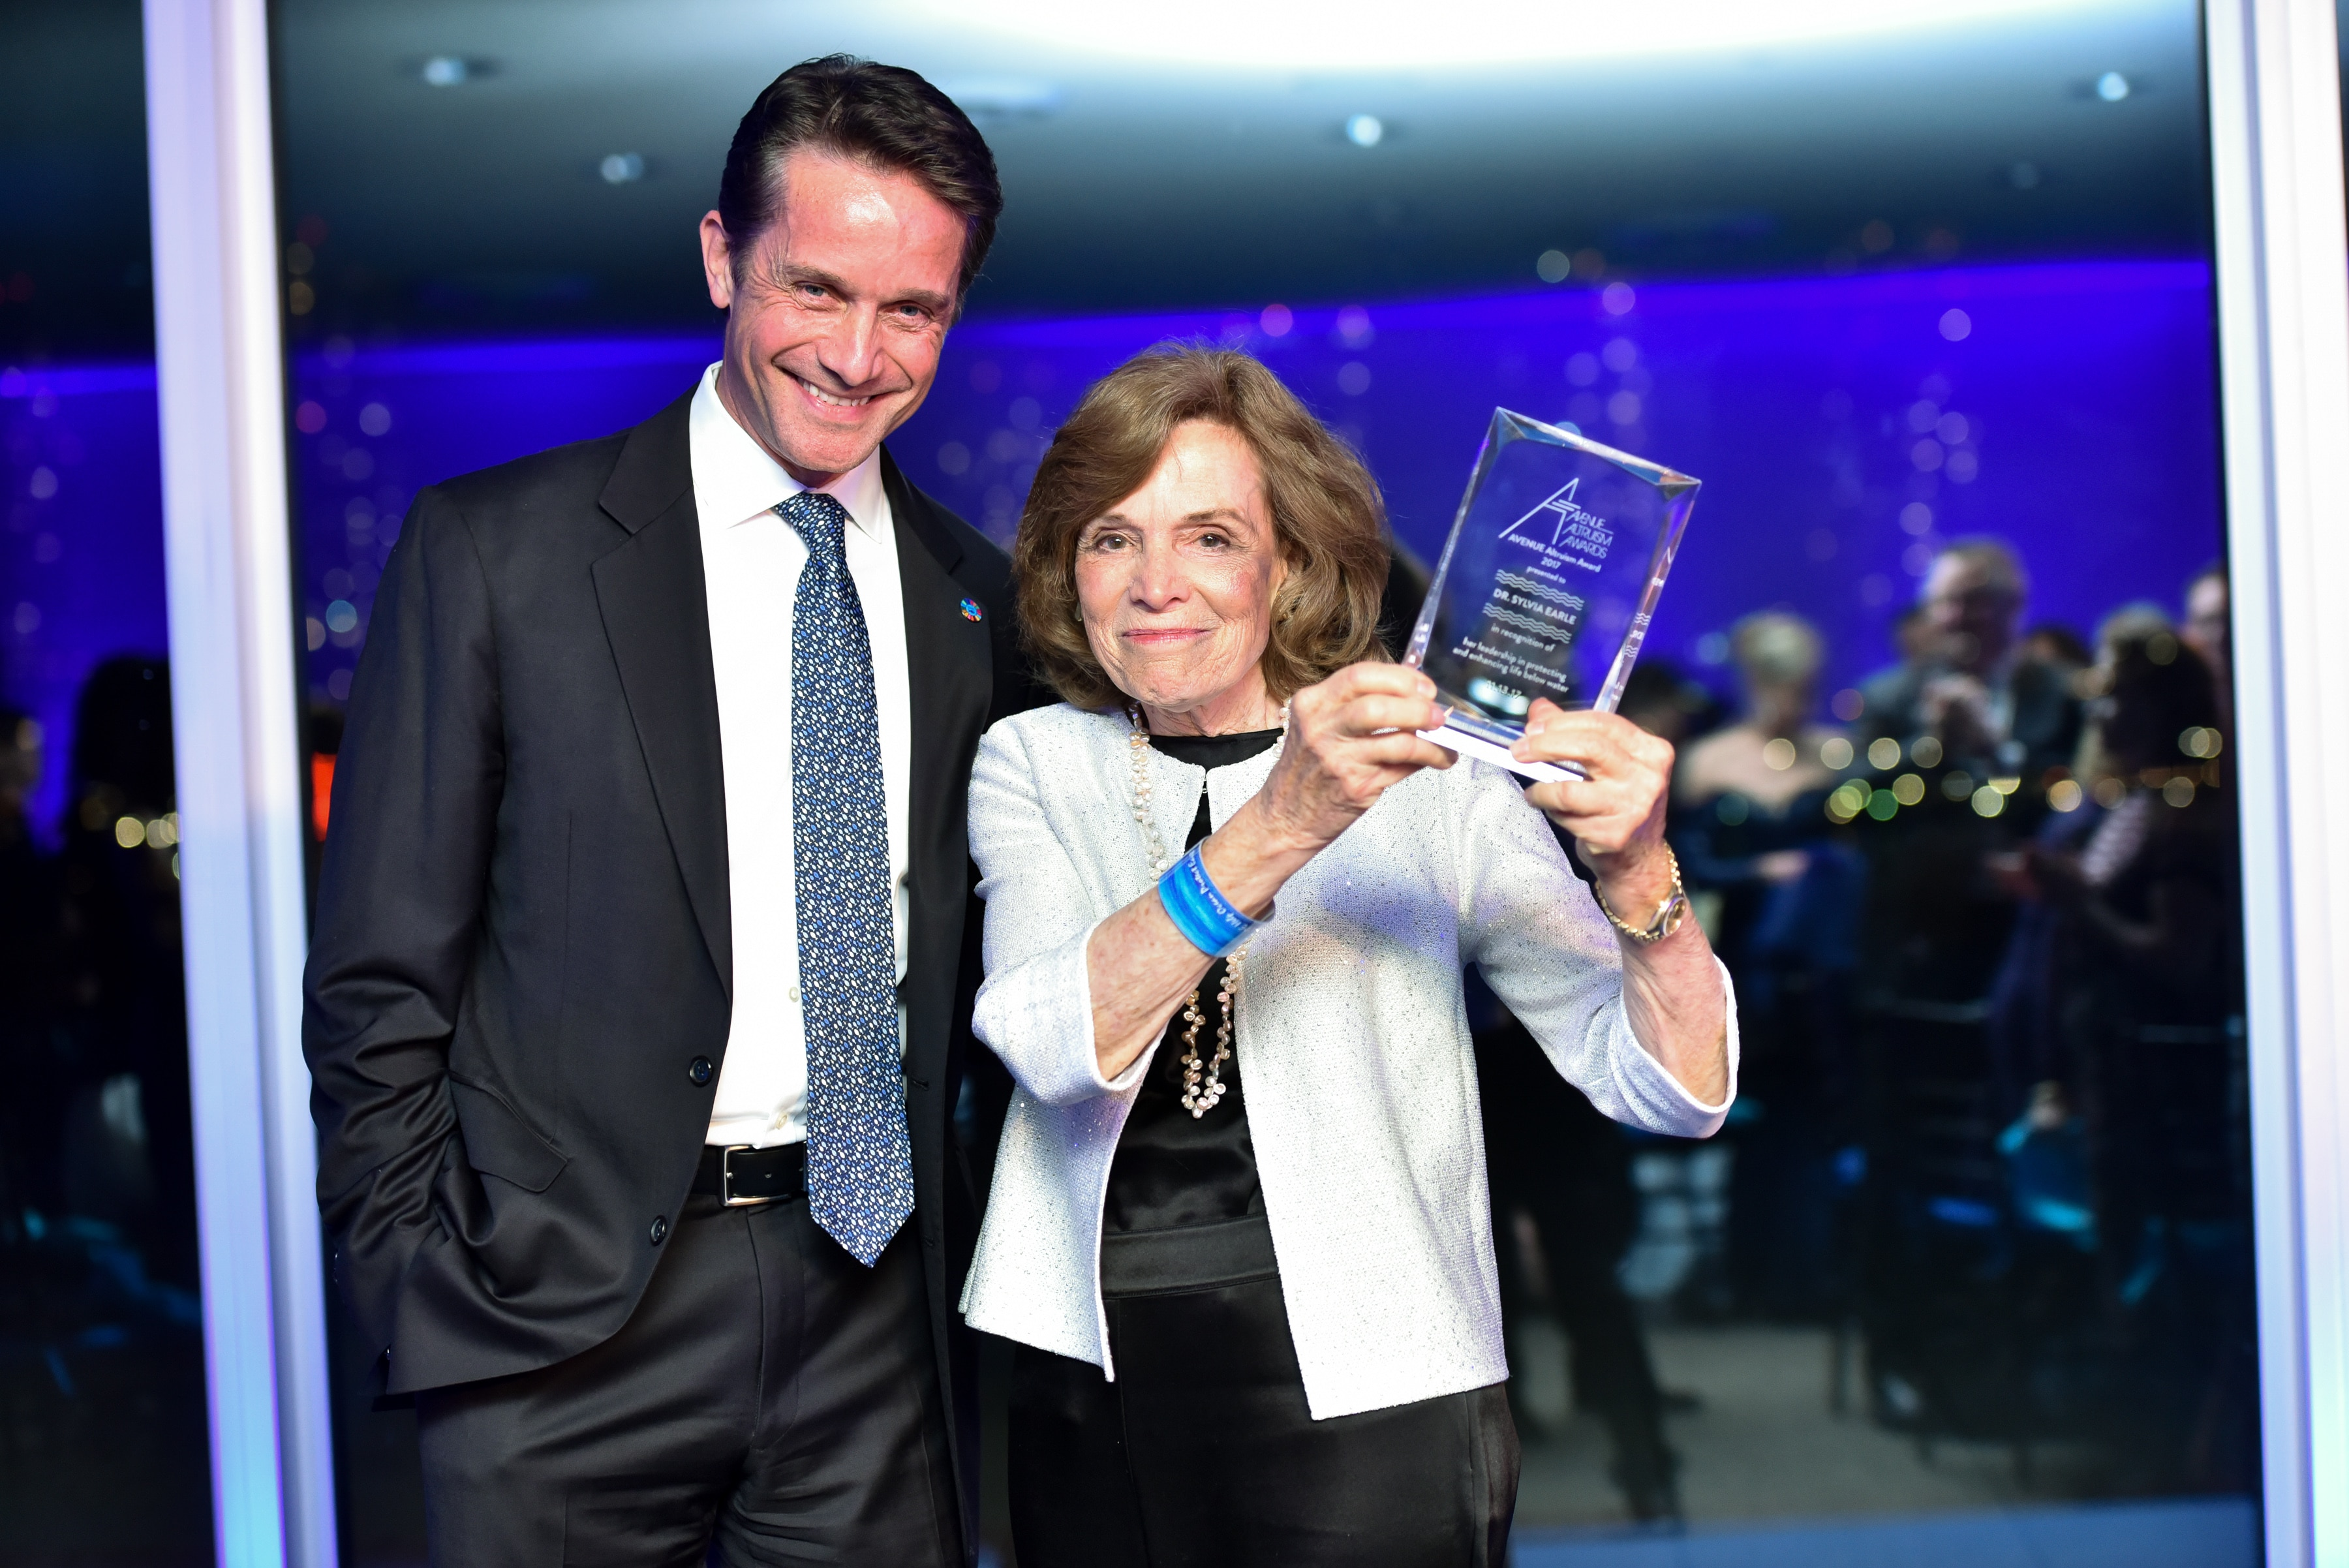 Dr. Sylvia Earle with Fabian Cousteau with he Avenue Altruism Award